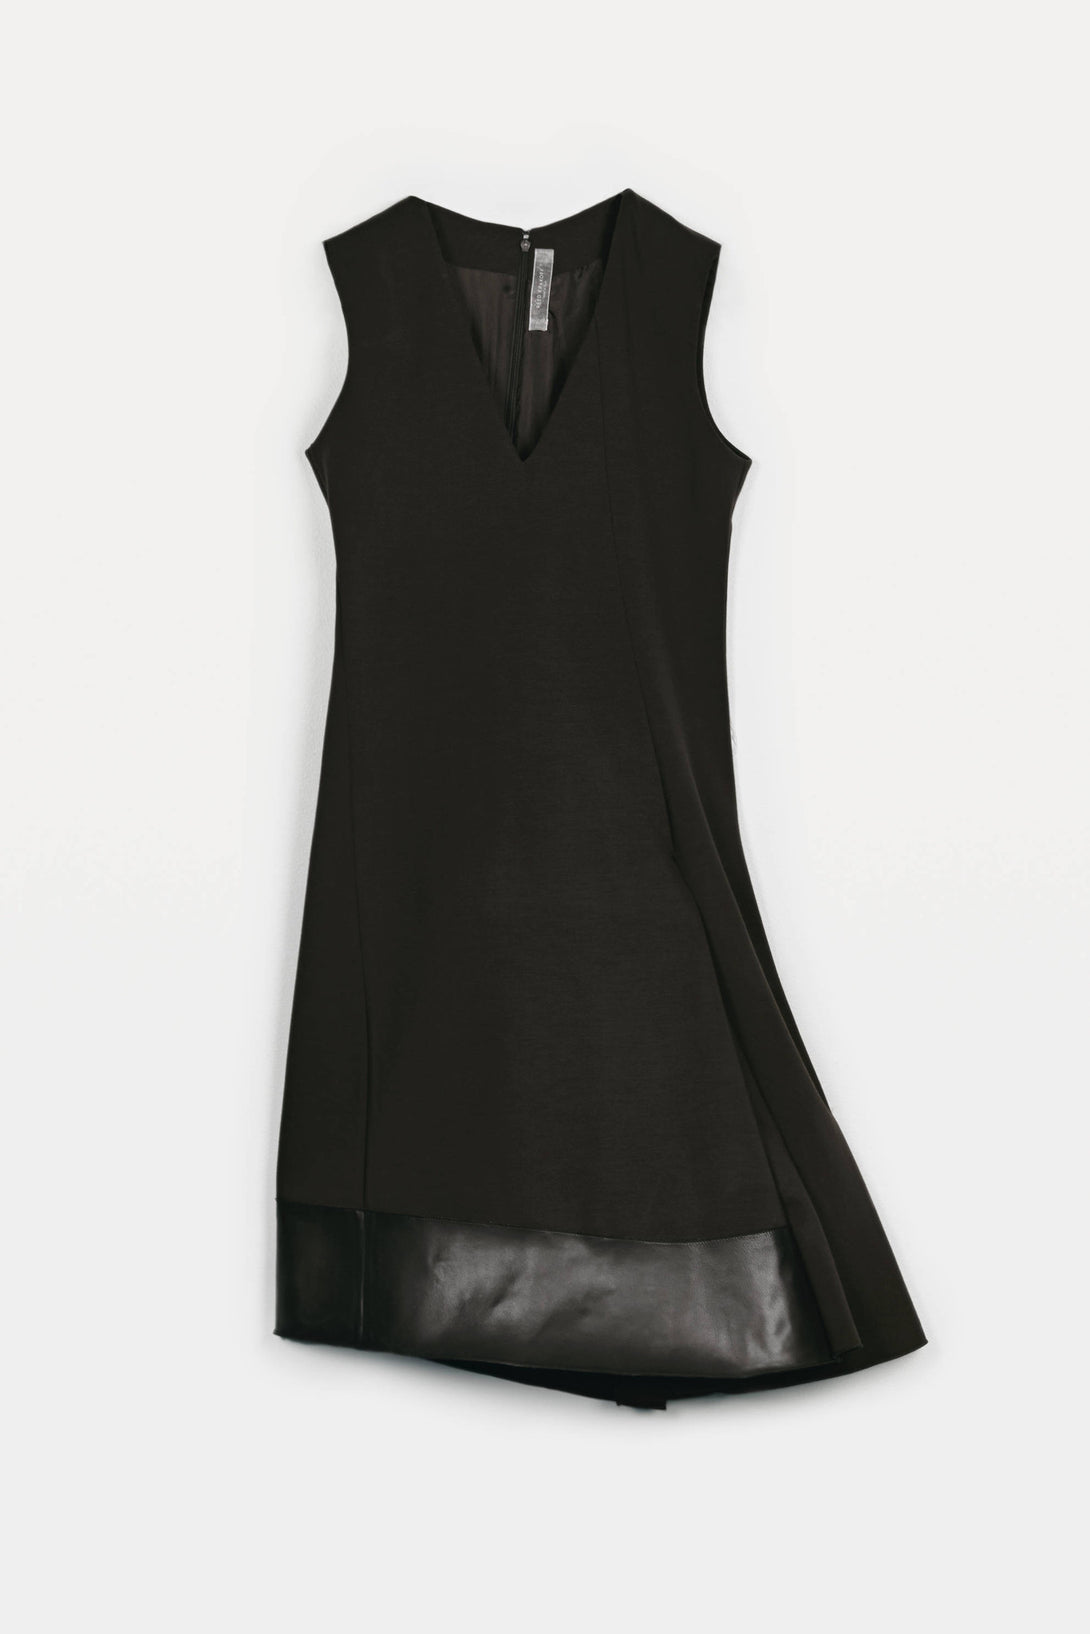 V-Neck Sleeveless Dress - Black